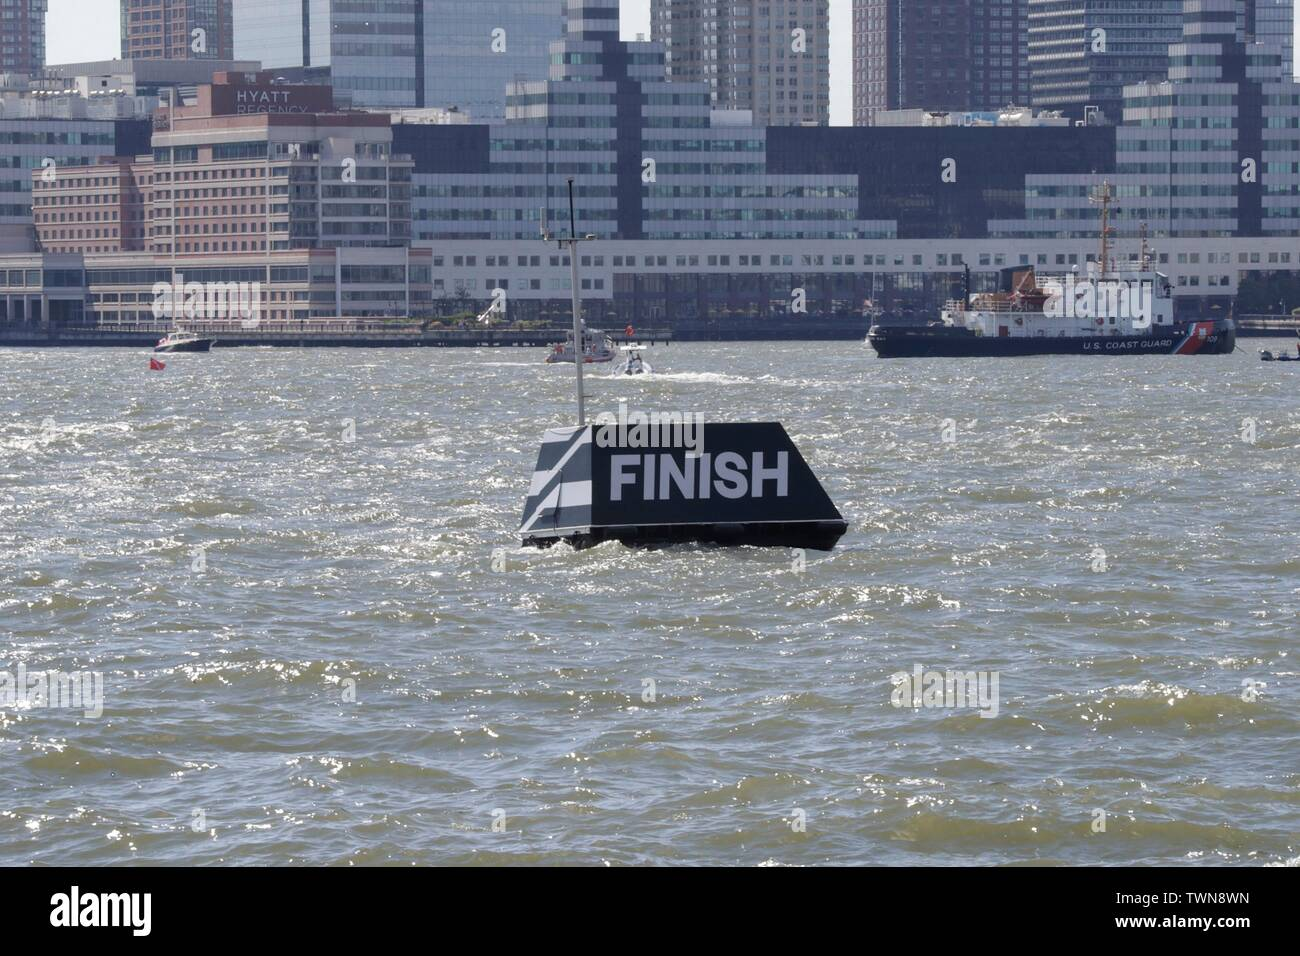 Hudson River, New York, USA, June 21, 2019 - SailGP teams sail their race during racing day 1 of the SailGP event today in New York.Photo: Luiz Rampelotto/EuropaNewswire PHOTO CREDIT MANDATORY. | usage worldwide Stock Photo